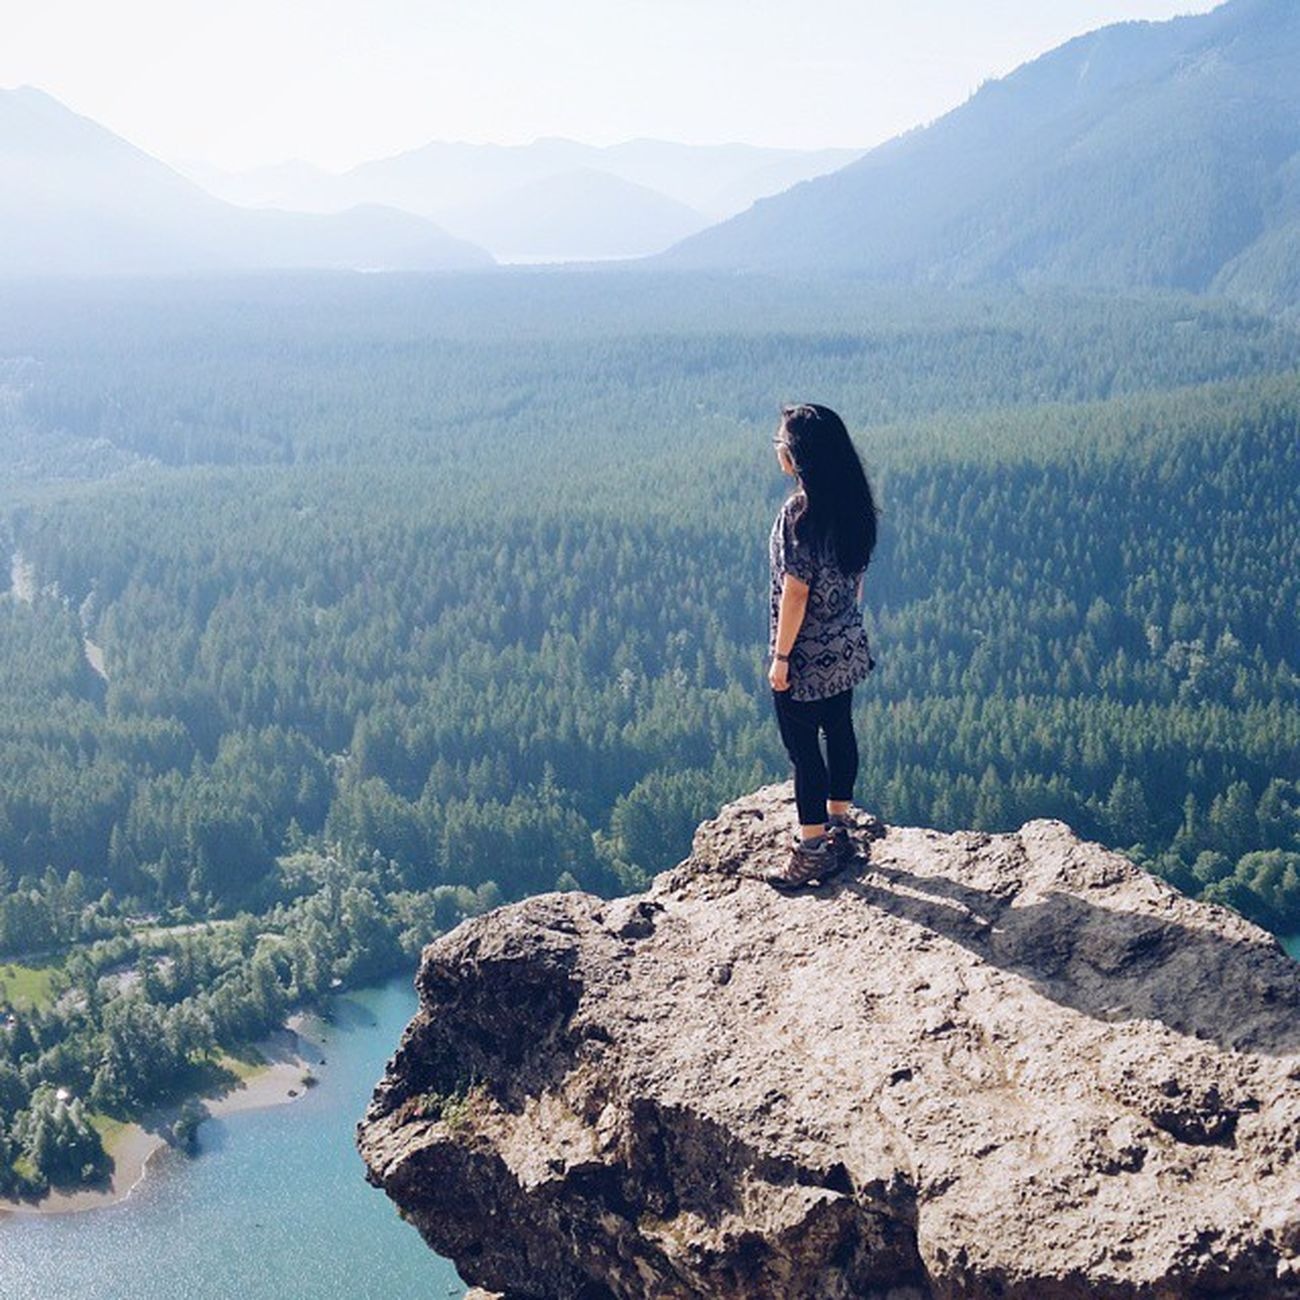 Ah, fresh air 😄 || Nature Hikingpnw Hiking PNW pnwdreaming thatPNWlife vscocam 📷: @wayoftay